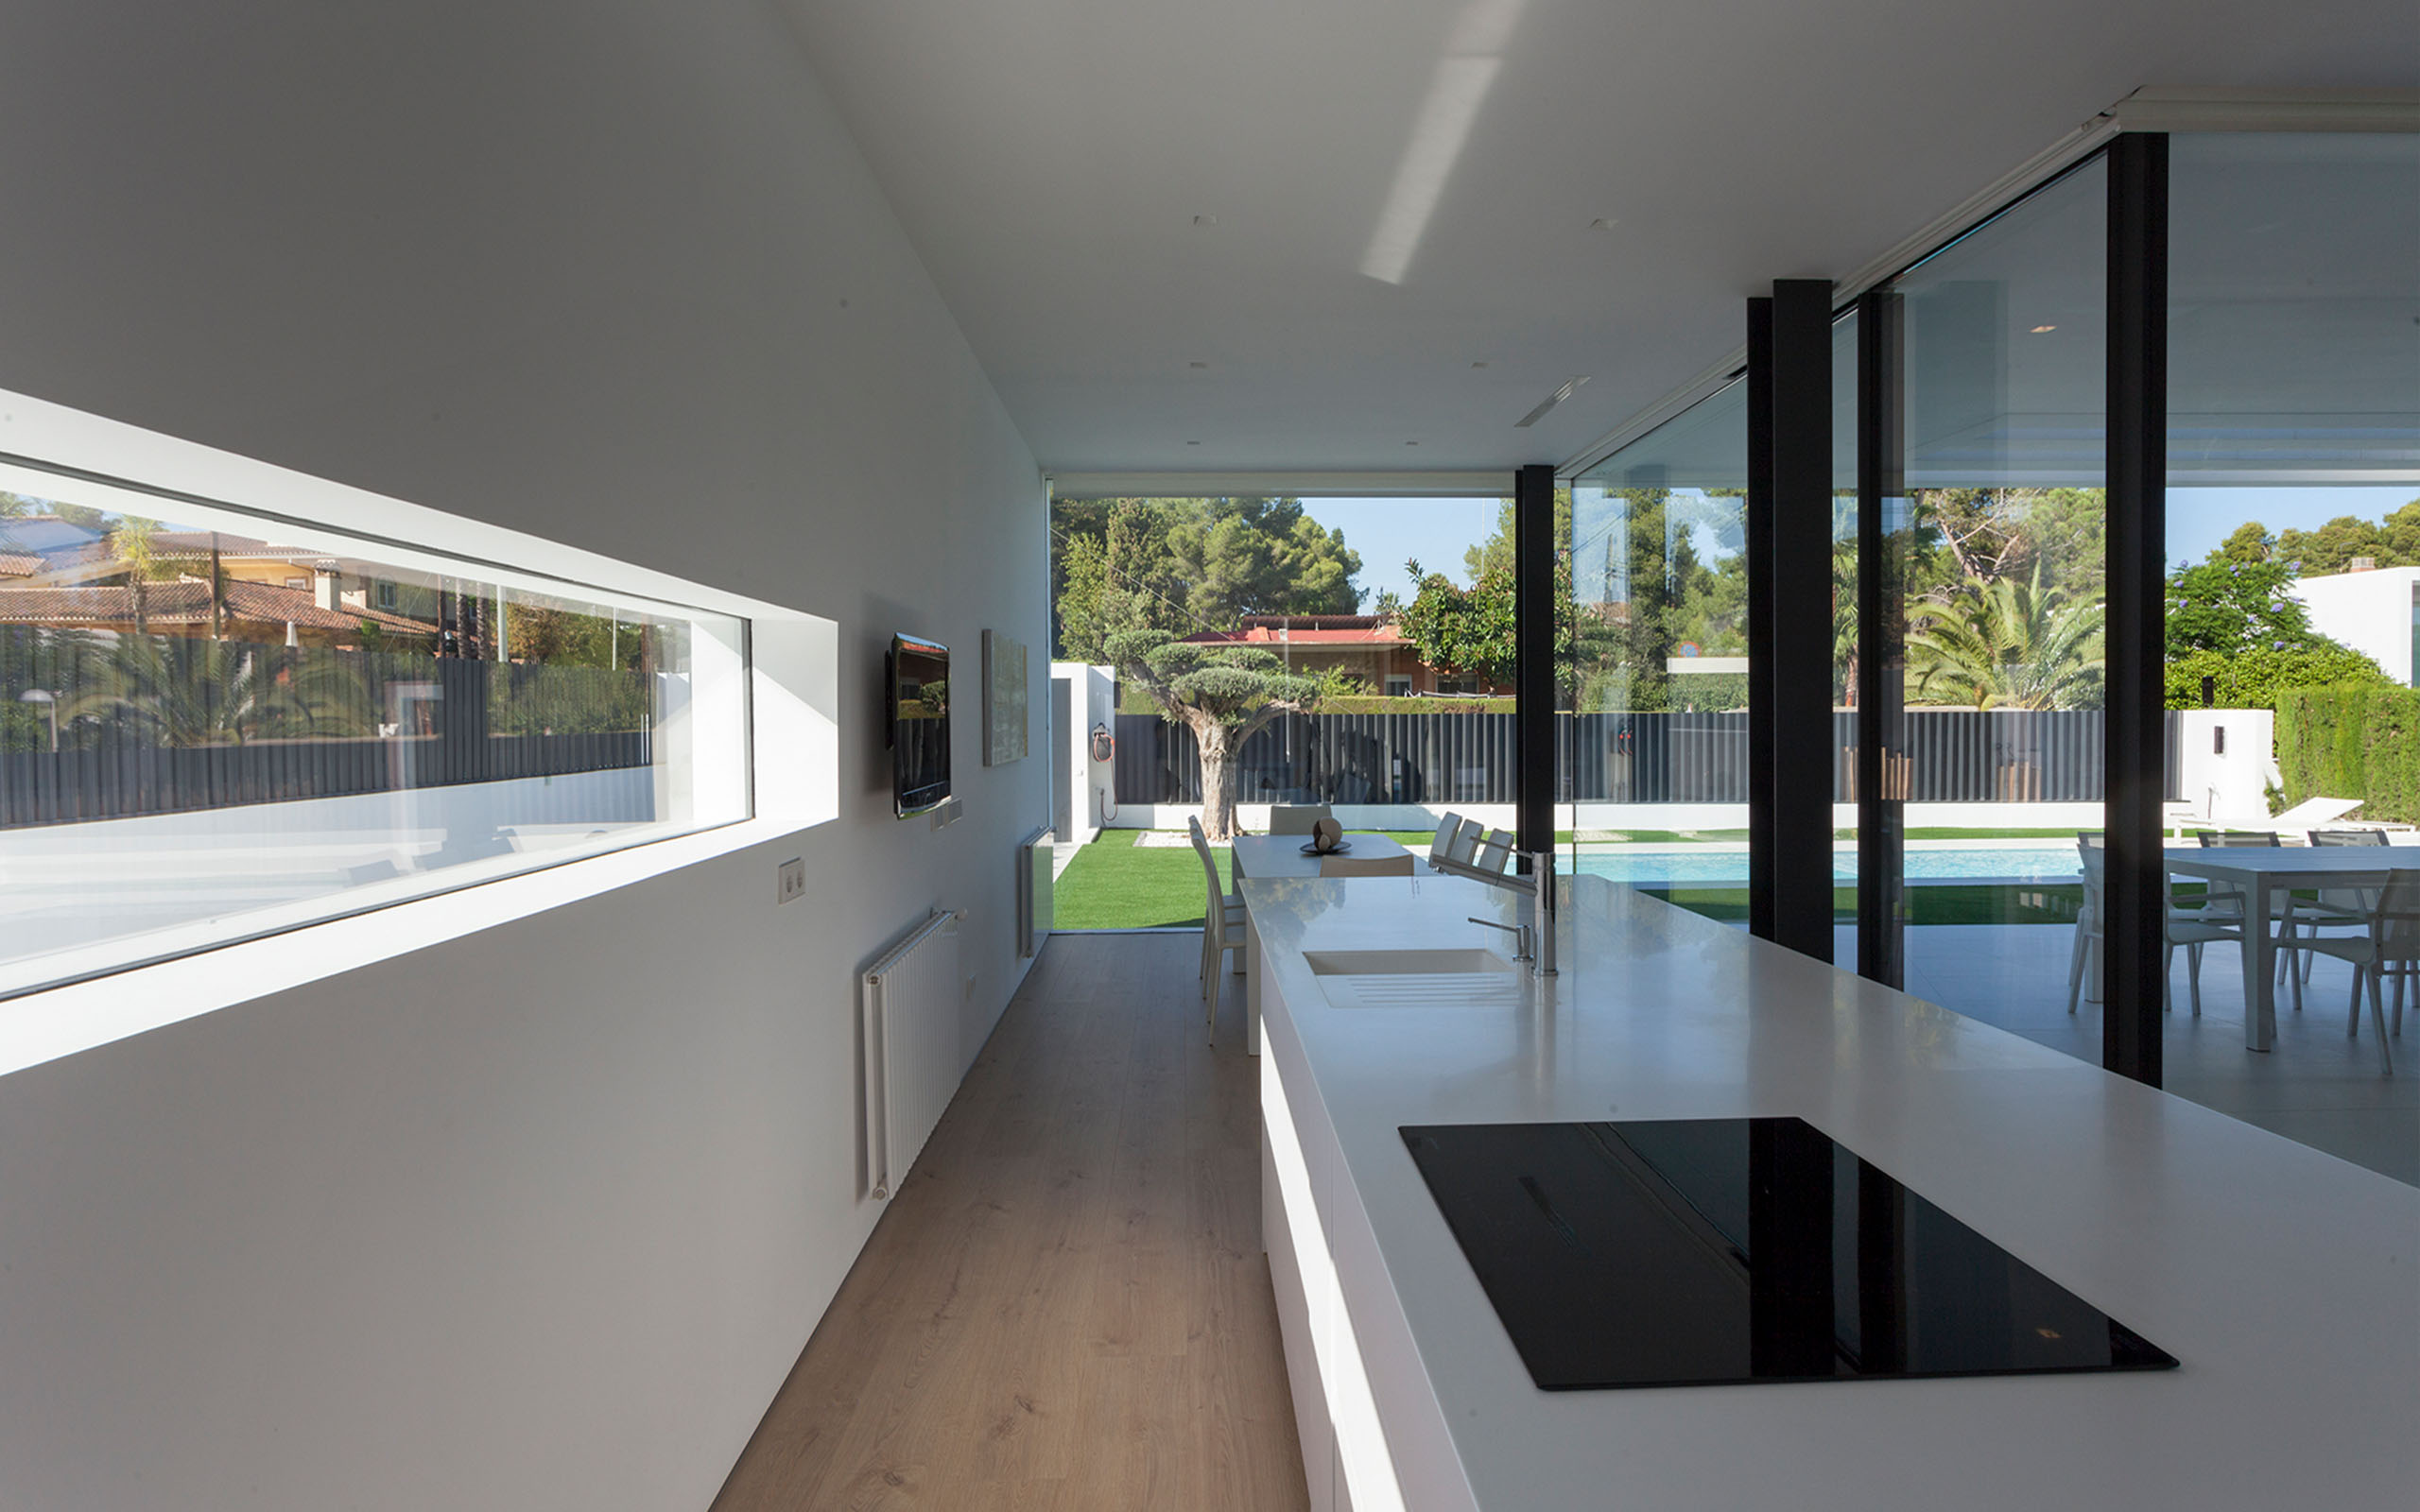 In short this is a conceptual home where users enjoy guaranteed privacy thanks to the careful balance between the construction elements and the differing